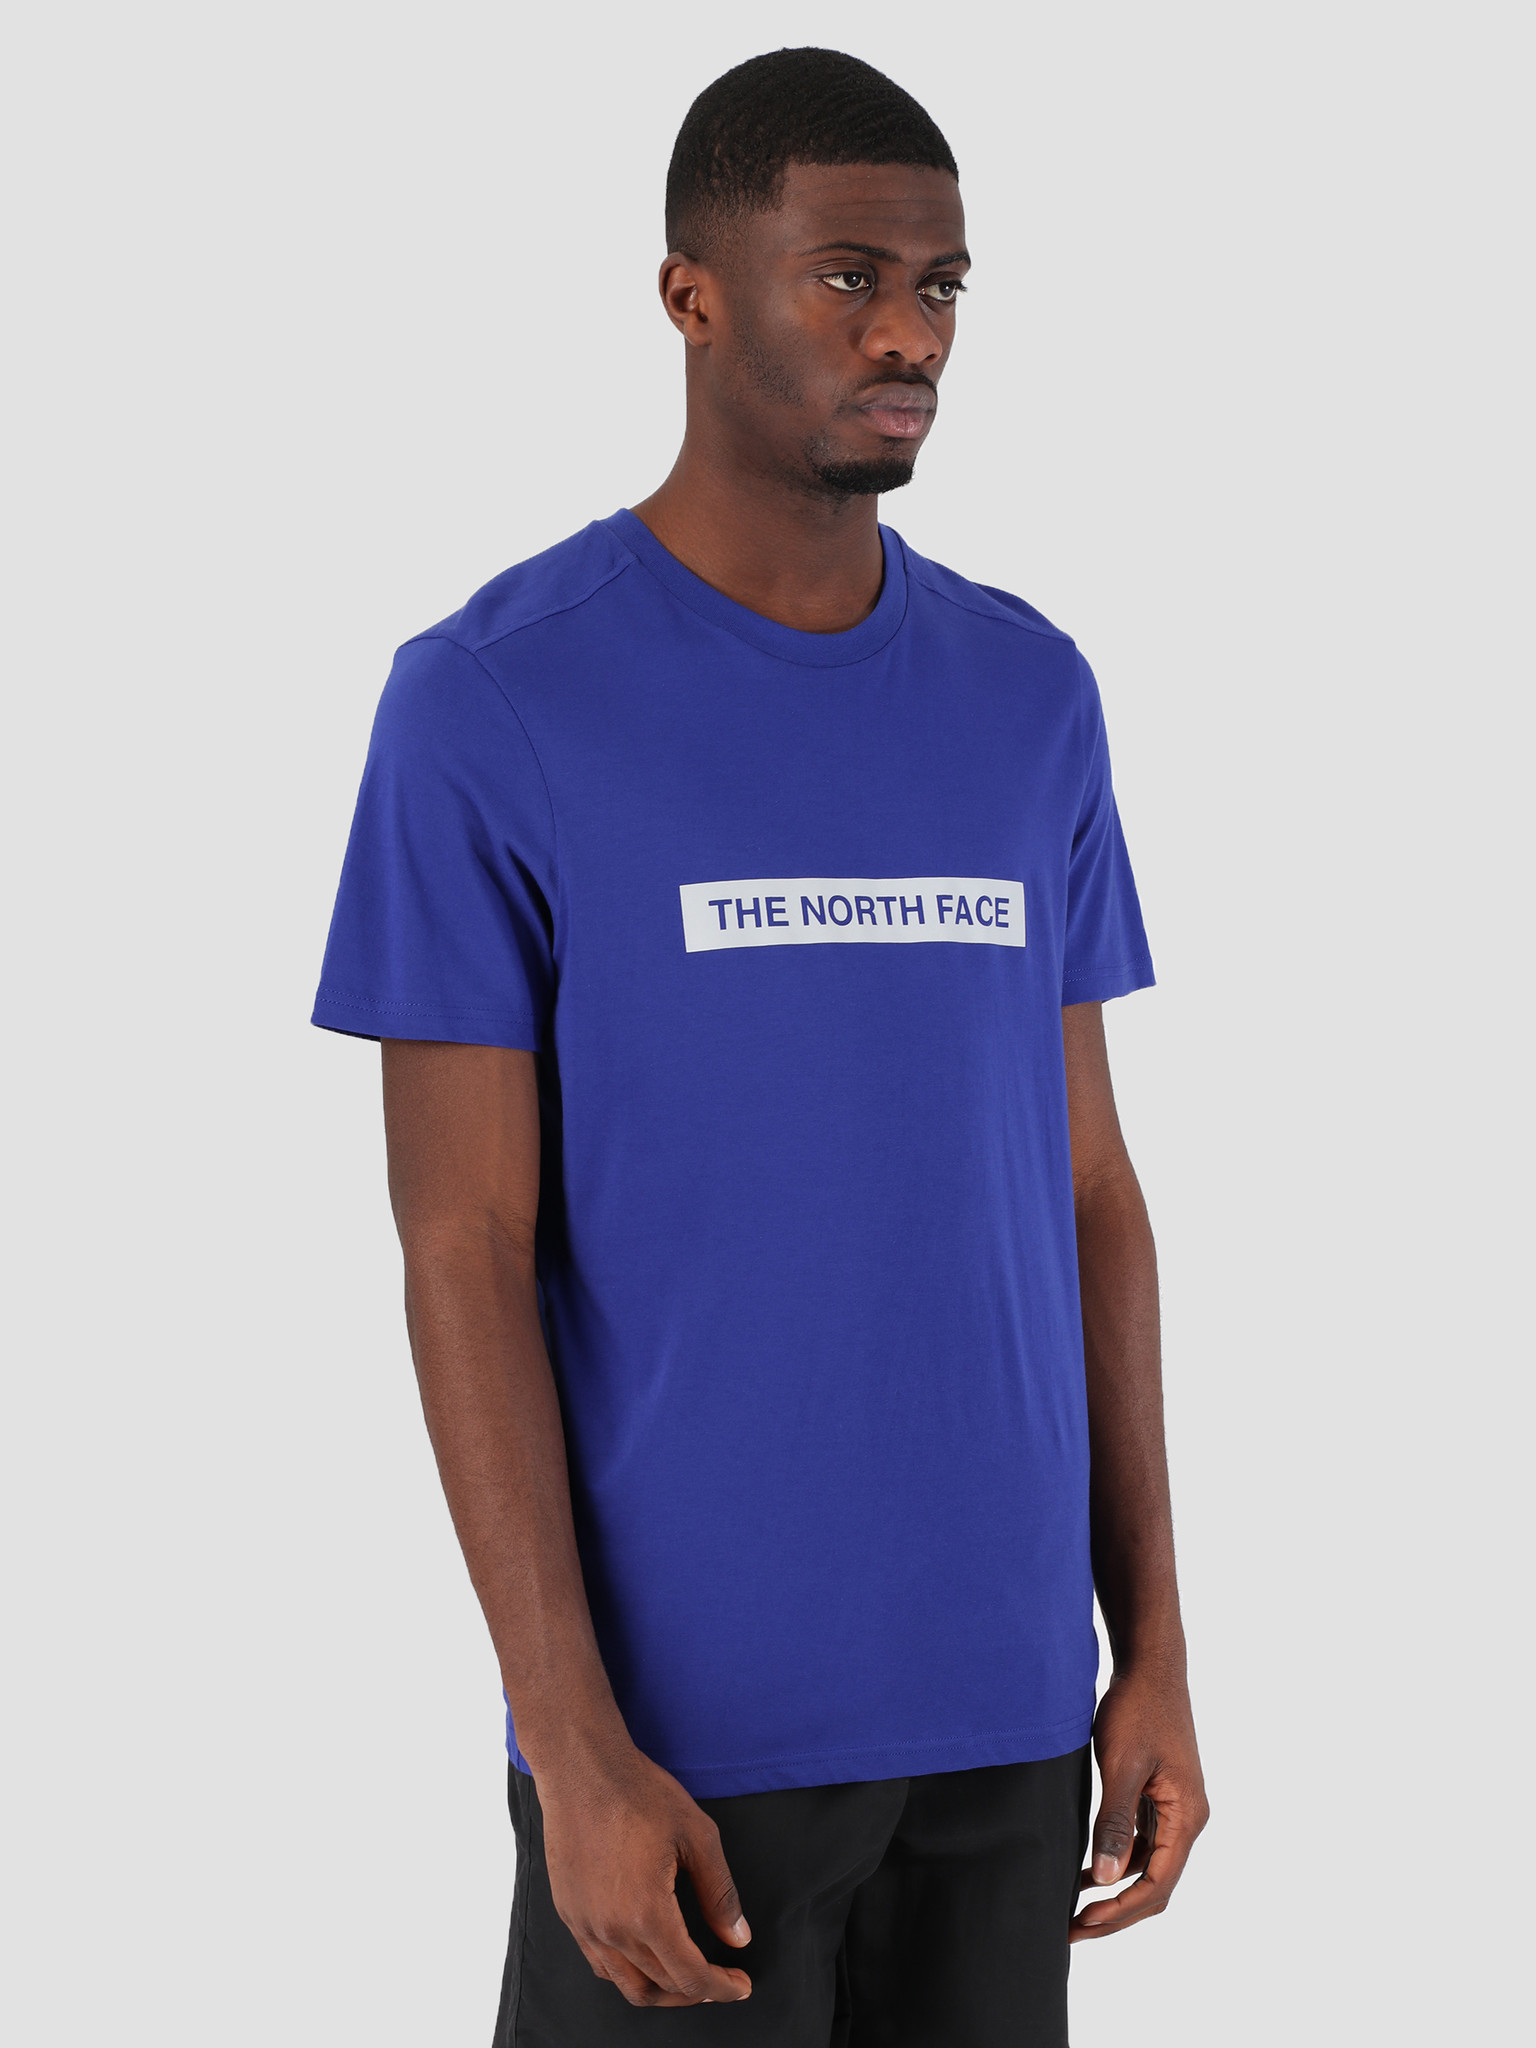 The North Face The North Face Light T-Shirt Lapis Blue T93S3O40S